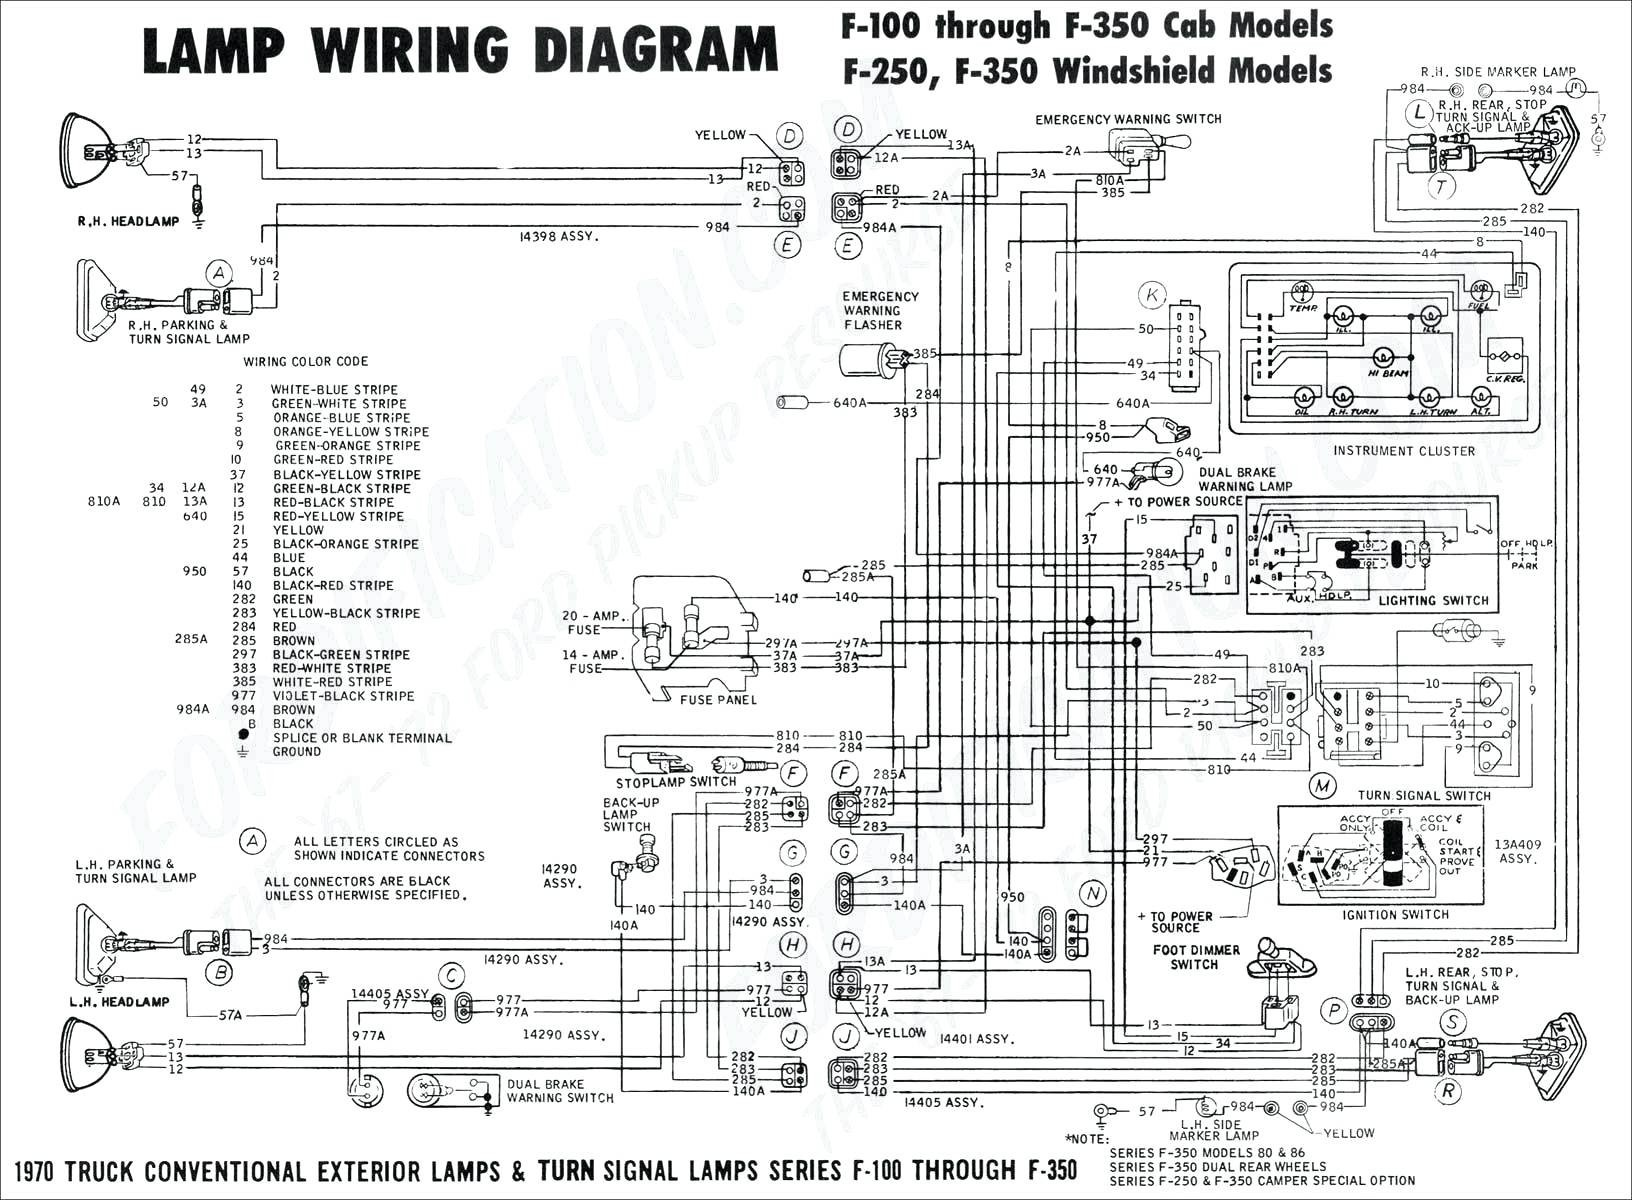 Trailer Wiring Diagram 7 Pin Australian Trailer Wiring